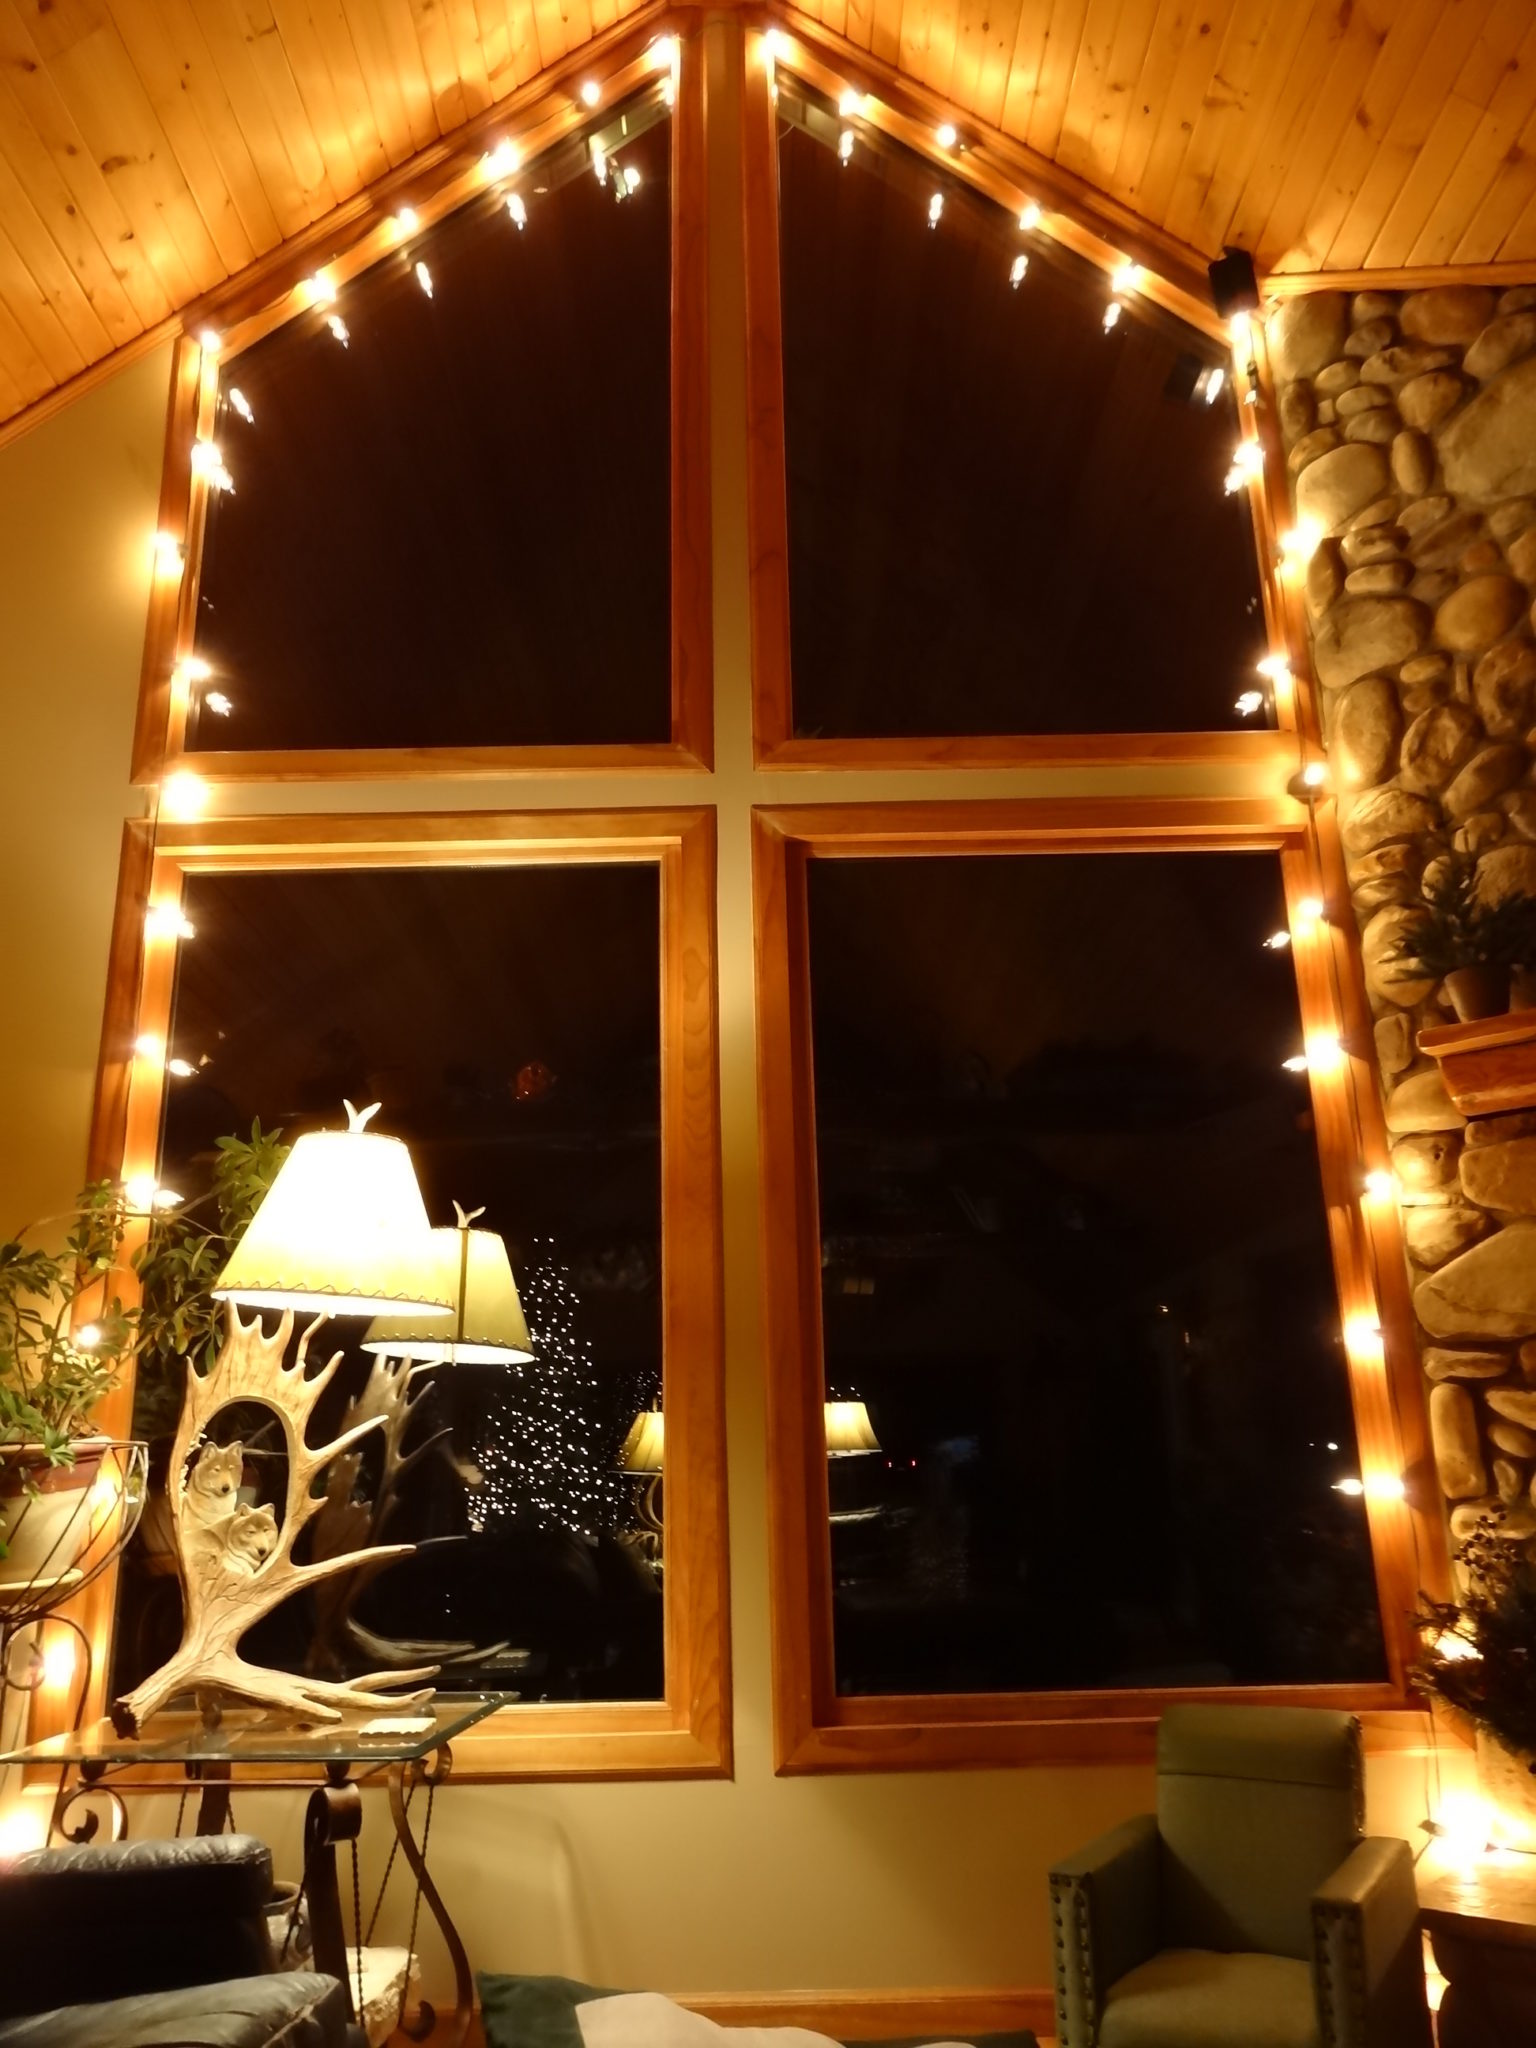 Rustic window decorated with string lights